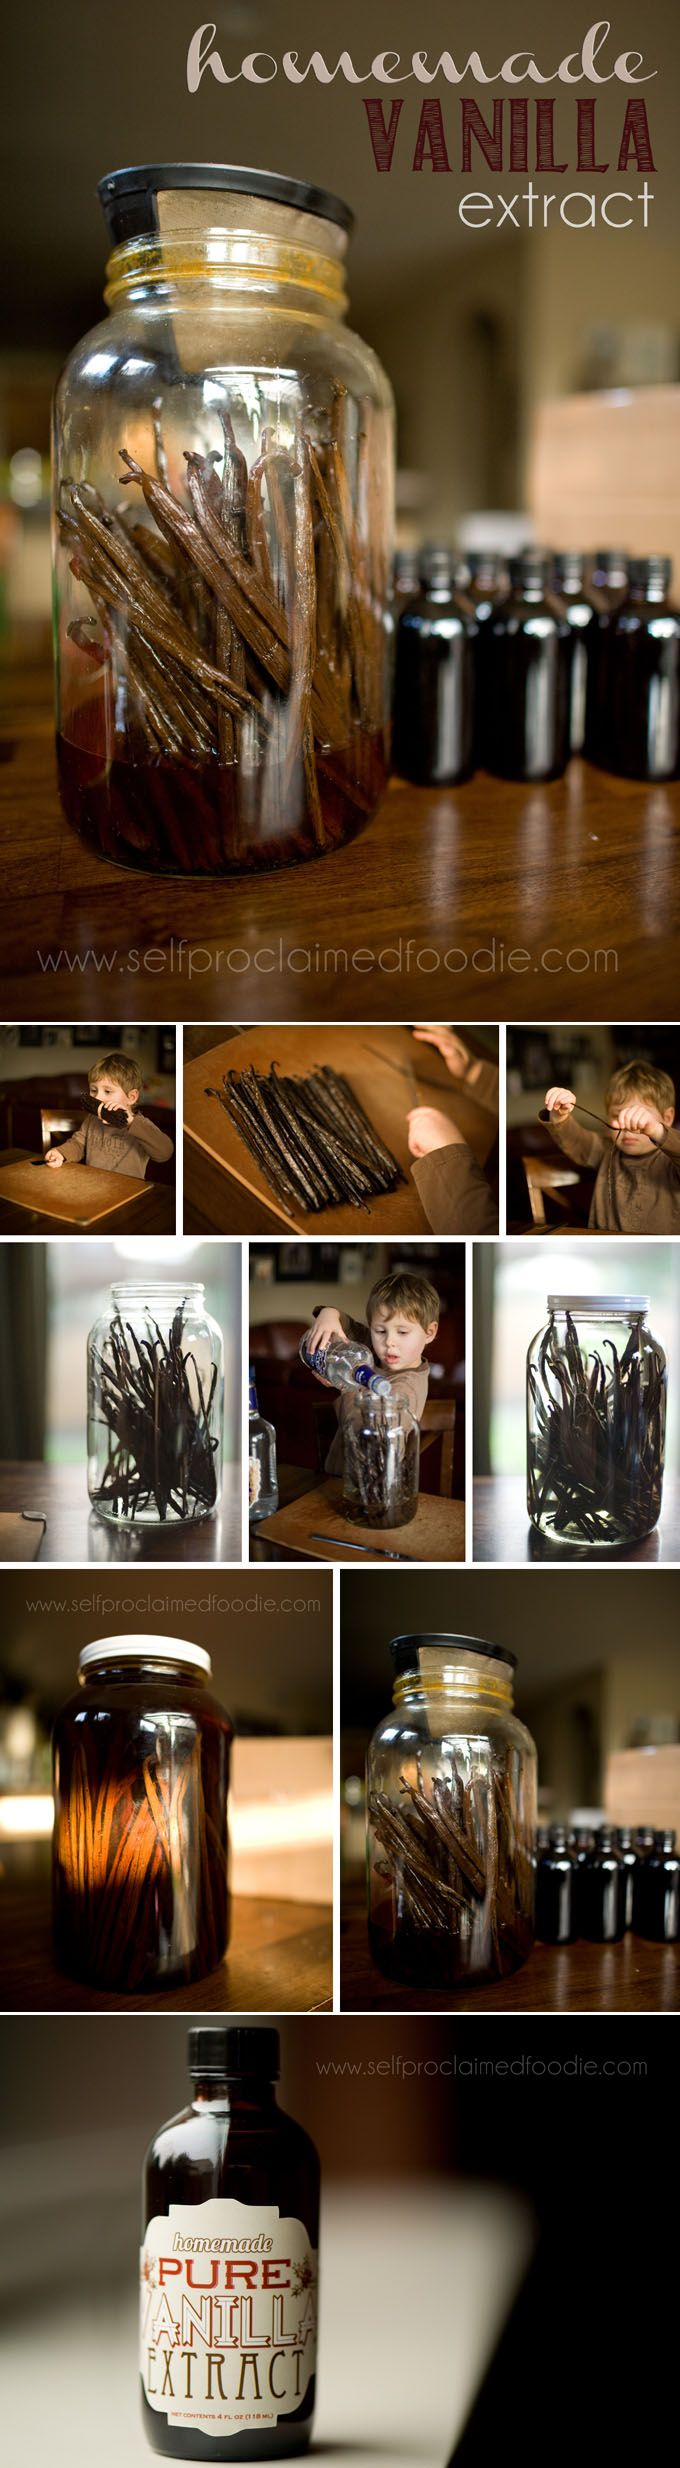 Making your own homemade vanilla extract is not only easy to do, but the vanilla you extract smells and tastes wonderful and the beans can still be used once you're done!